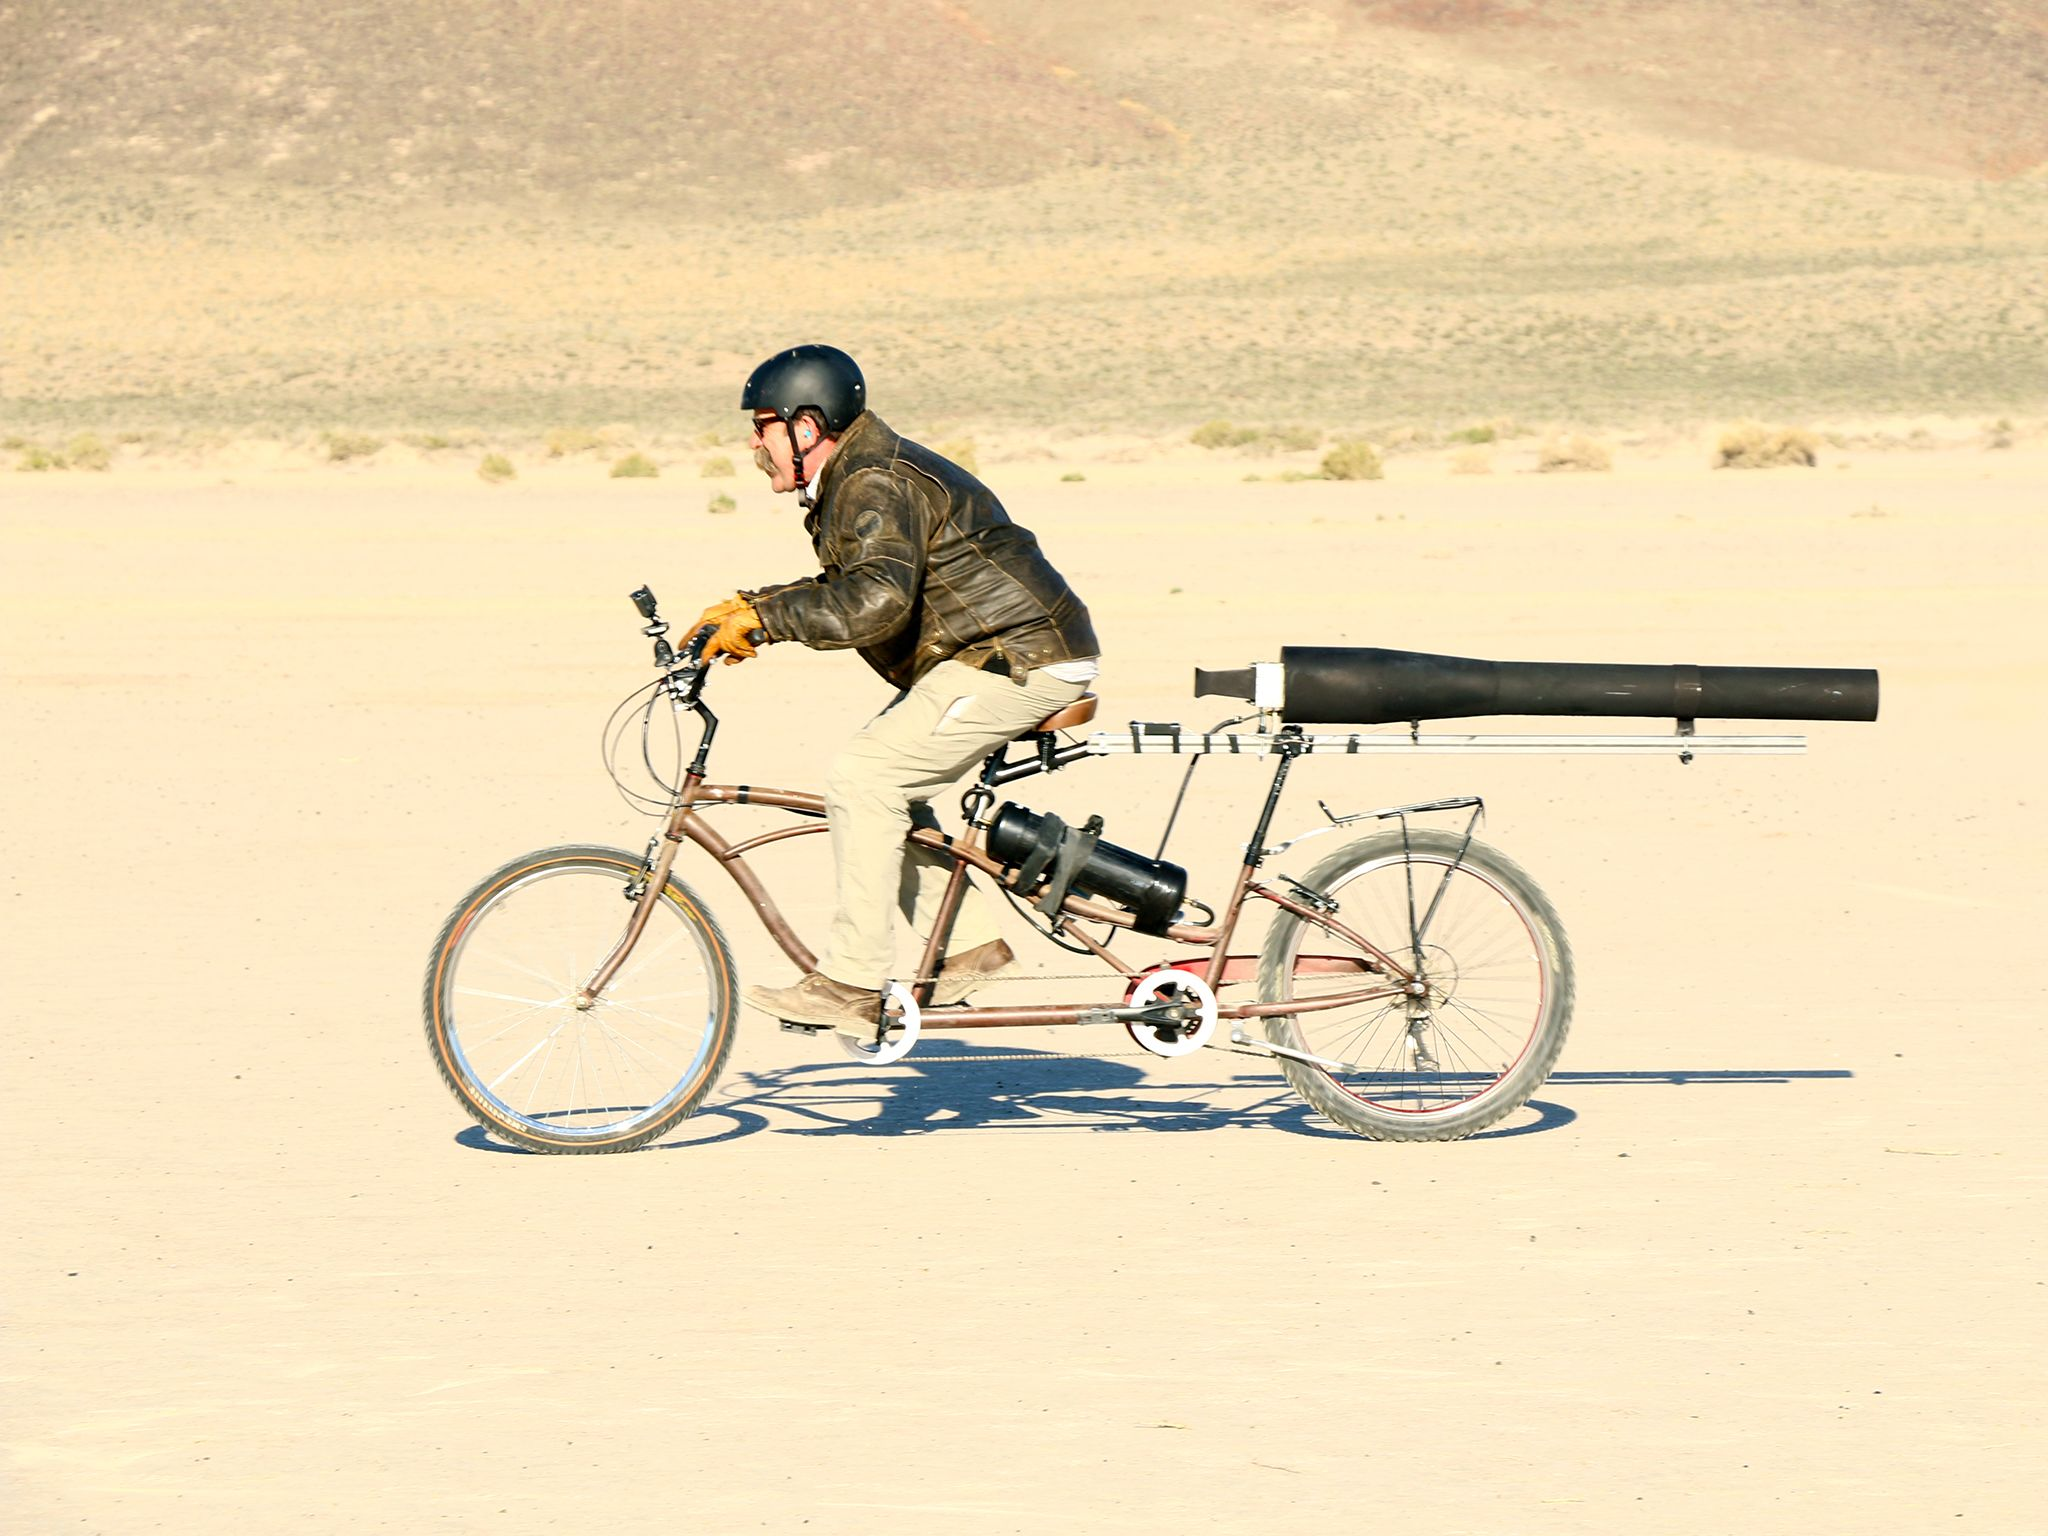 Fallon, Nev.:  Engineer, Dick Strawbridge tests his rocket powered bike. This image is from... [Foto del día - diciembre 2015]